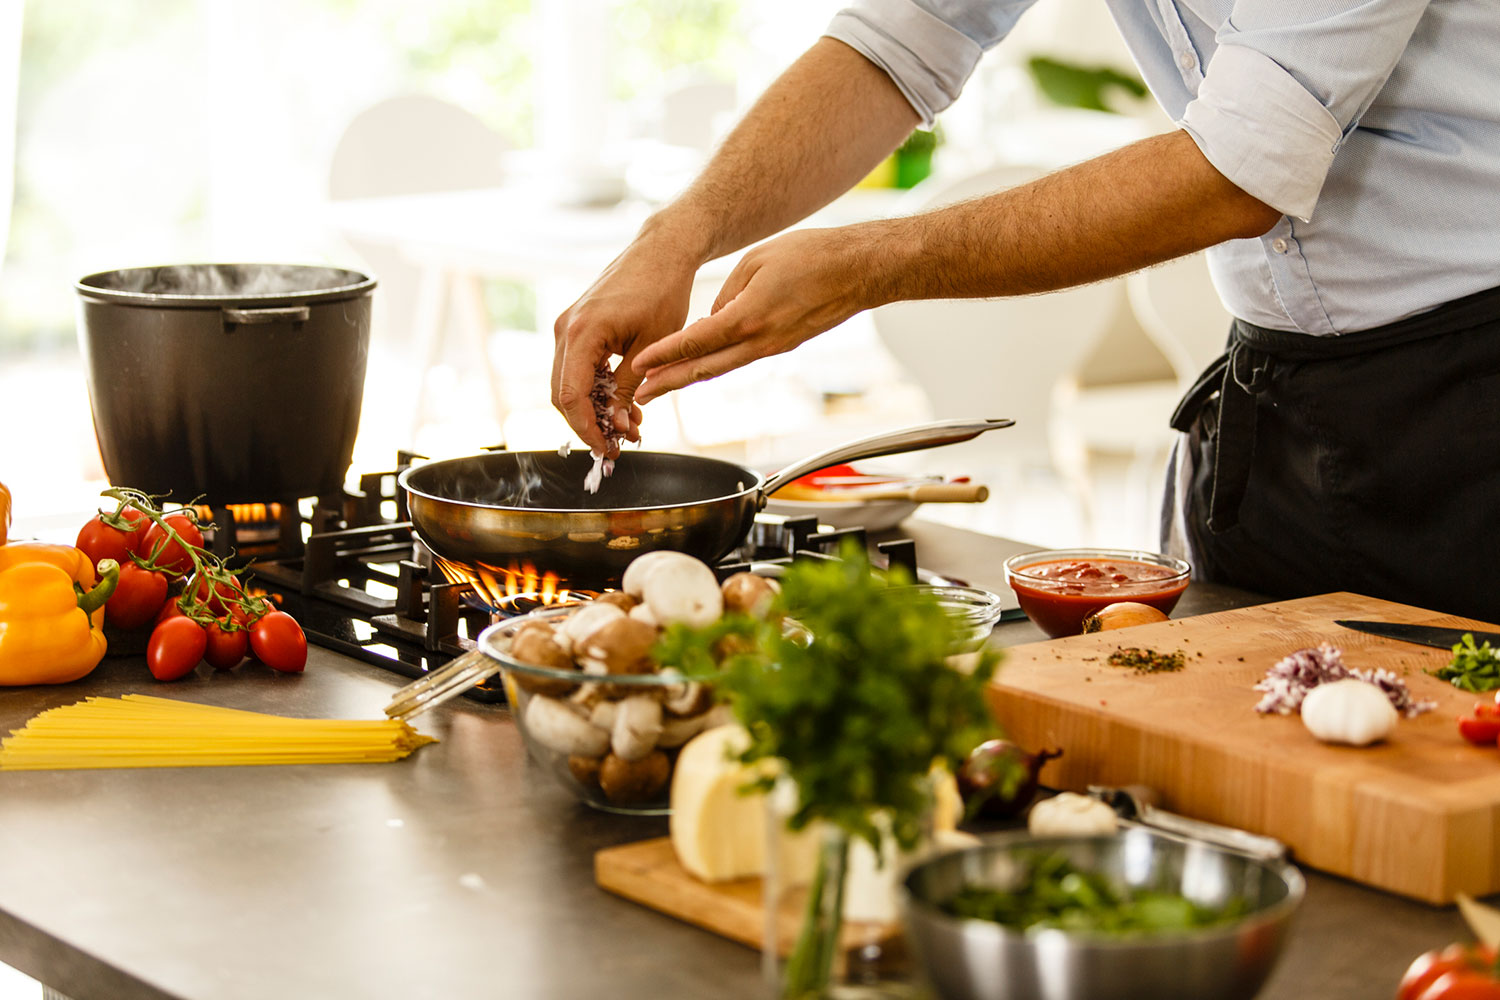 Chef's Table at Trico Living Well